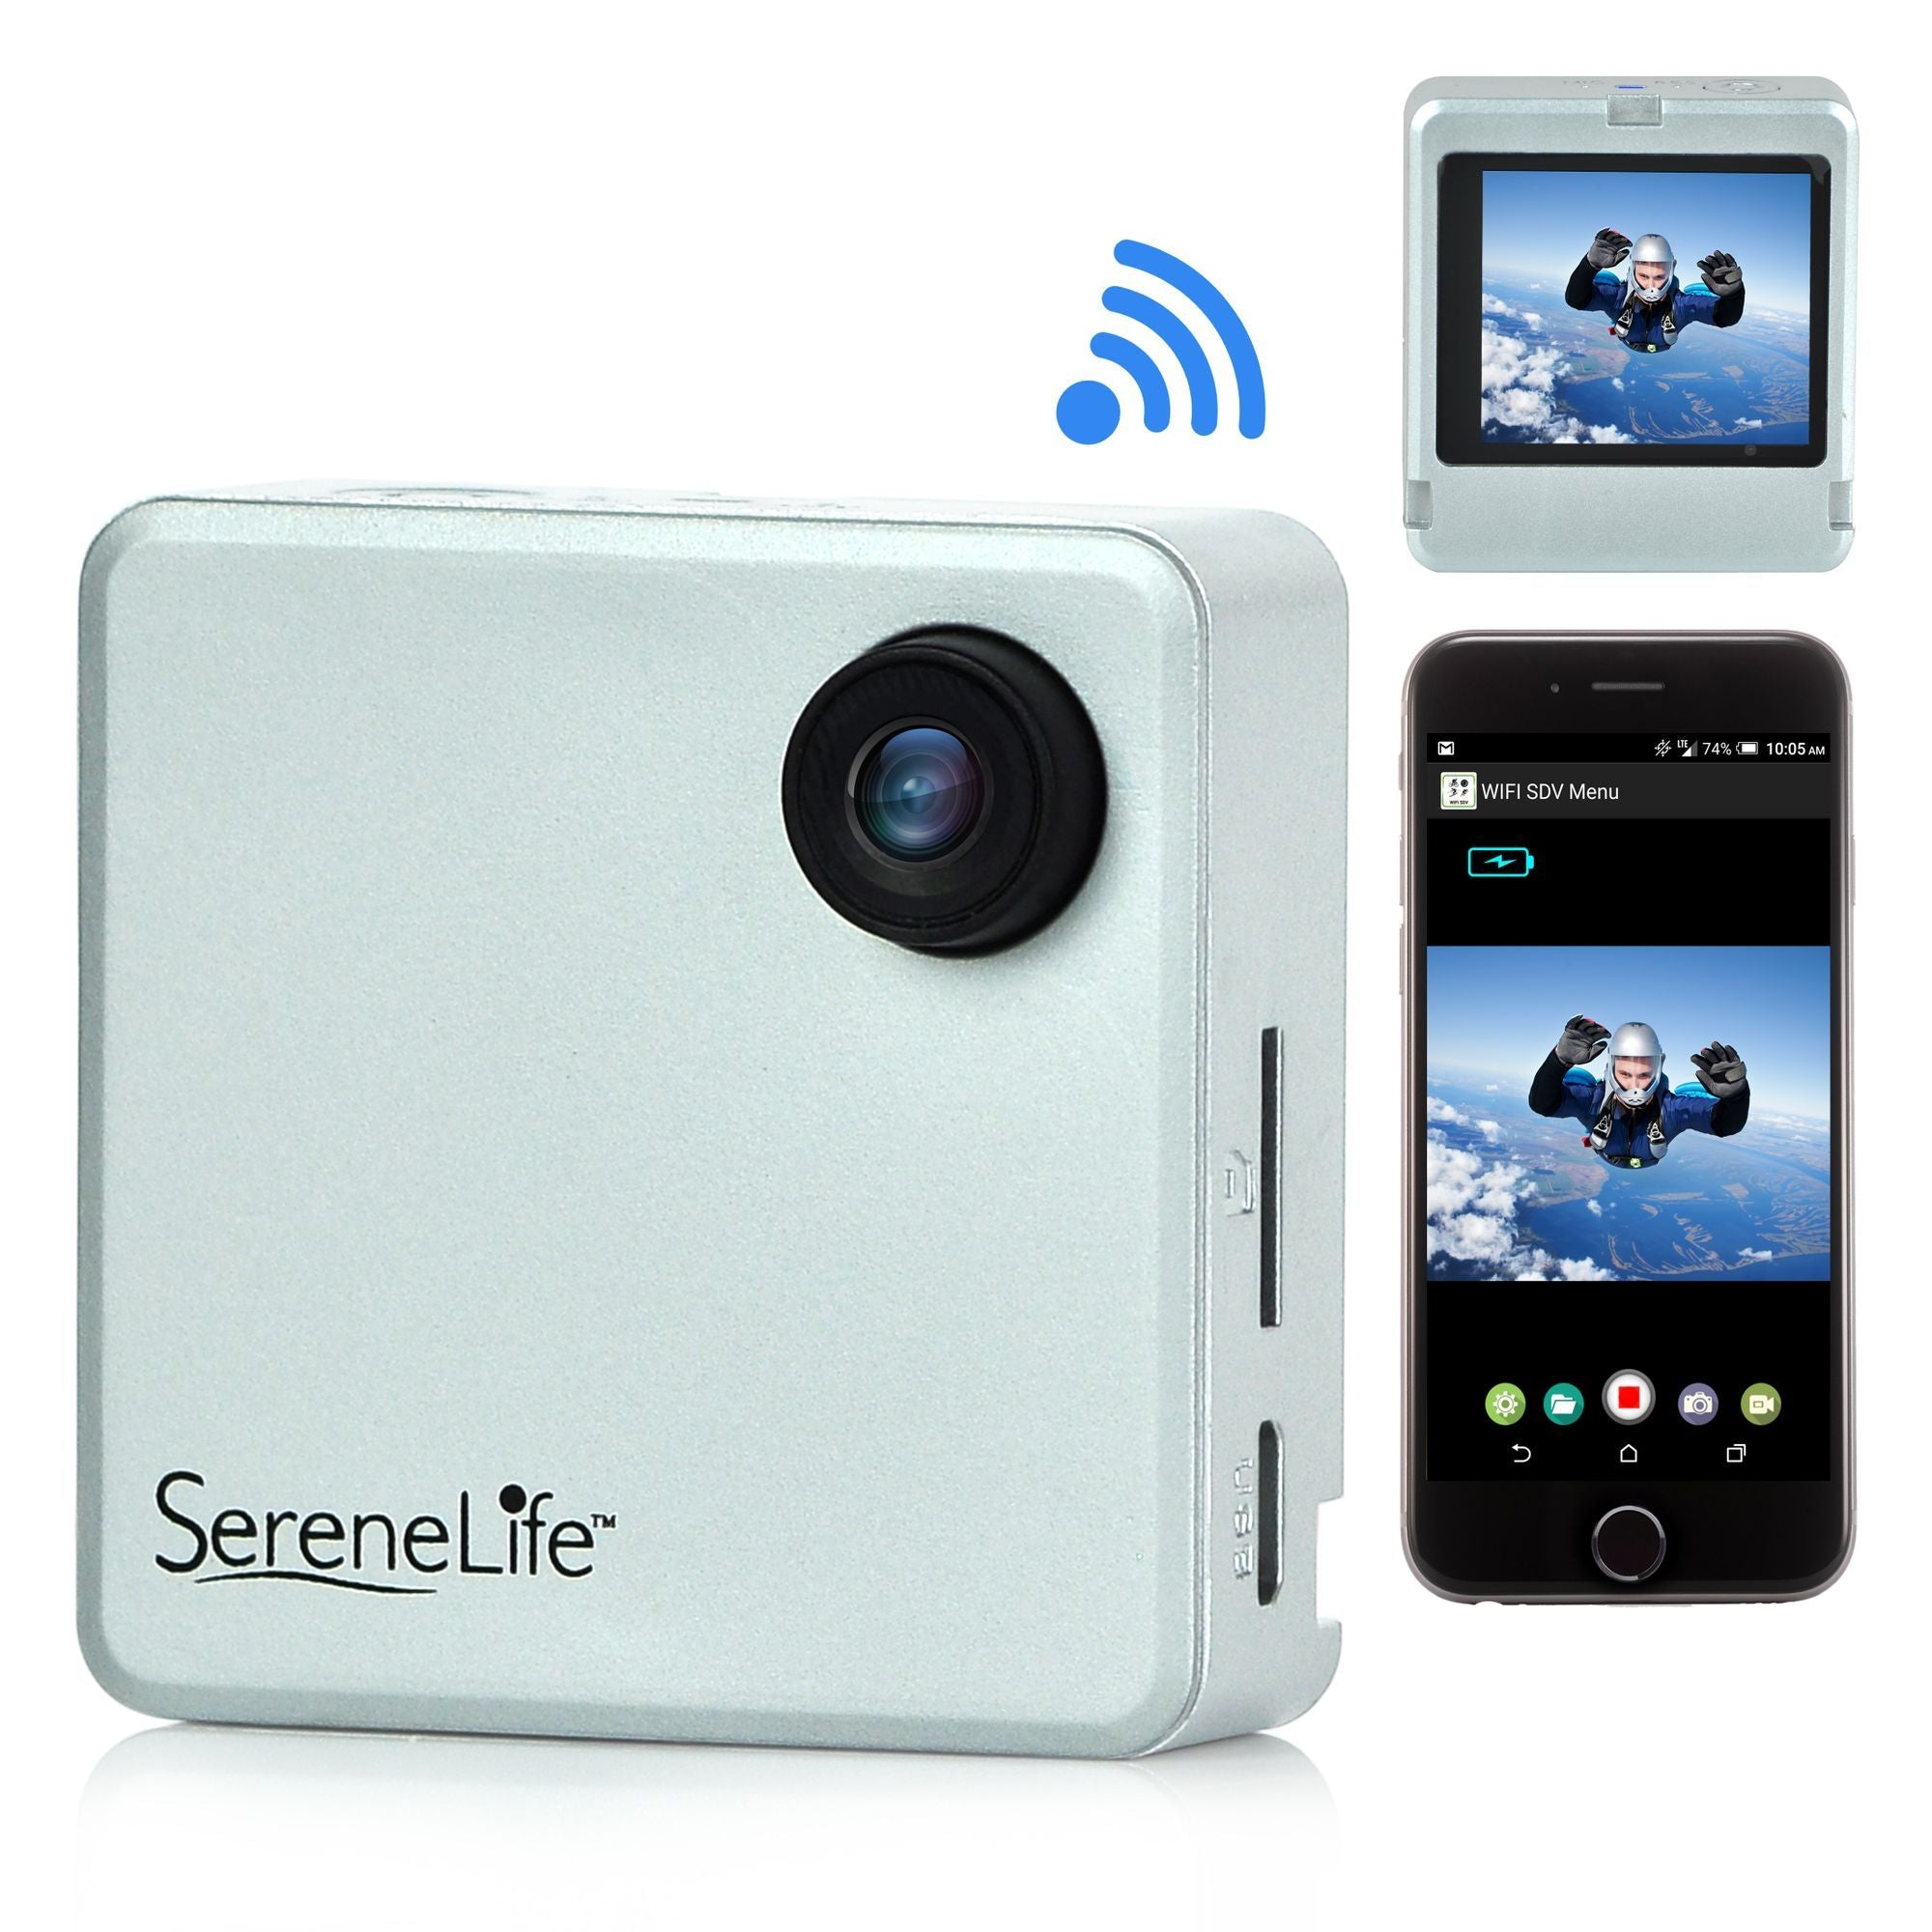 SereneLife Wireless Clip-on Compact Pocket Camera, WIFI, 1.8'' HD Screen, Rechargeable Battery - Gray (SLBCM18SL)